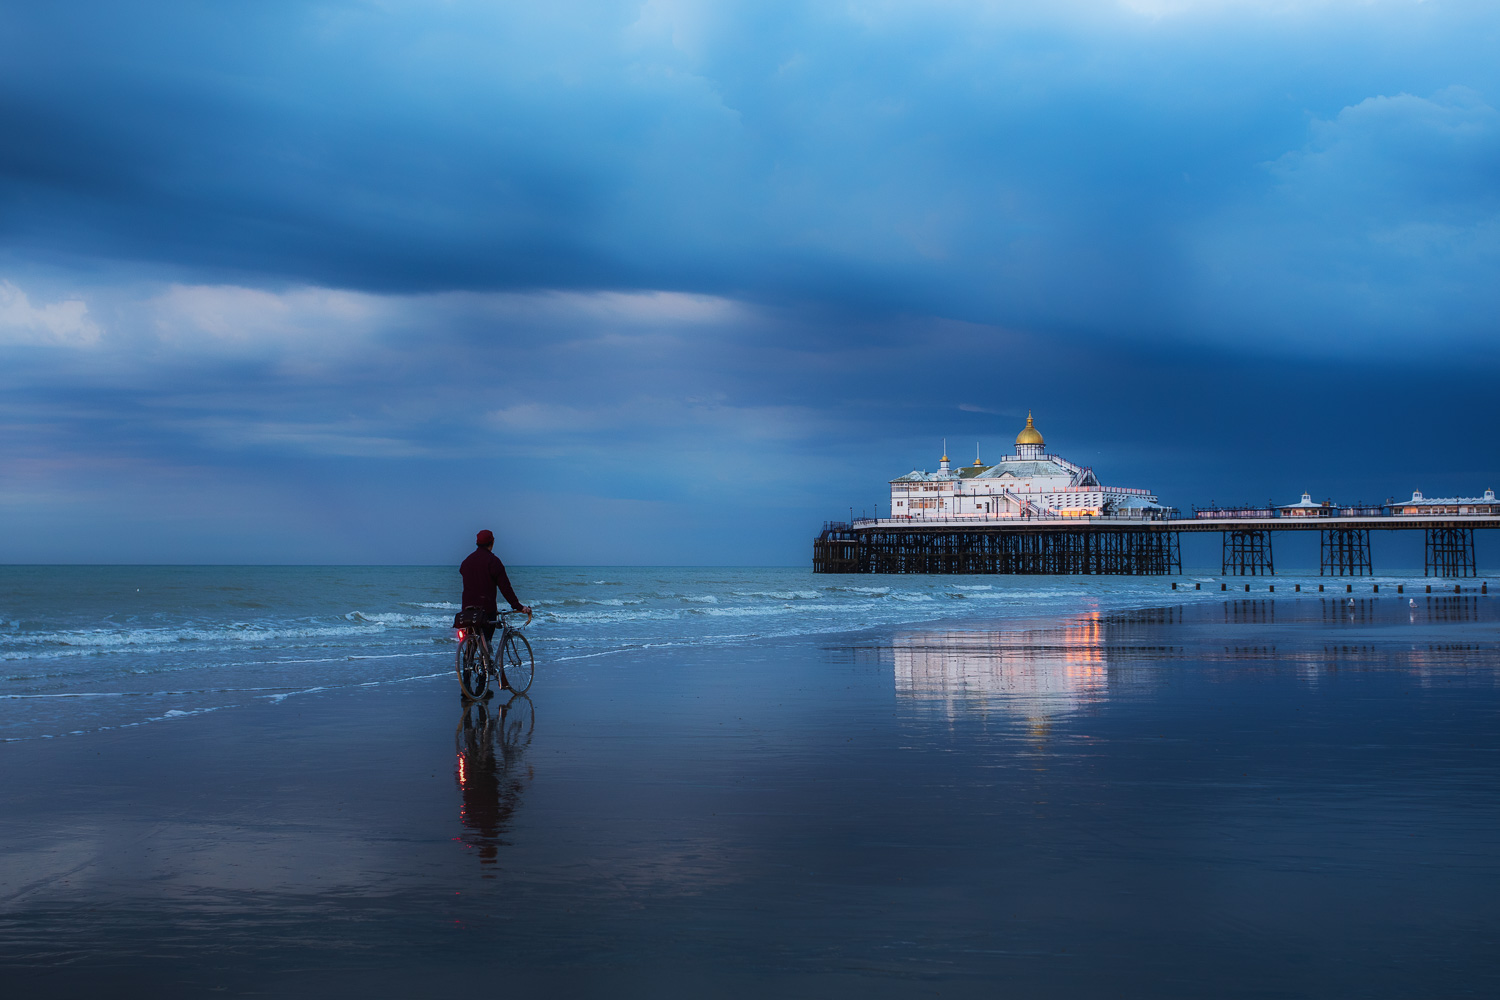 Man with bicycle gazing at Eastbourne pier stormy sky